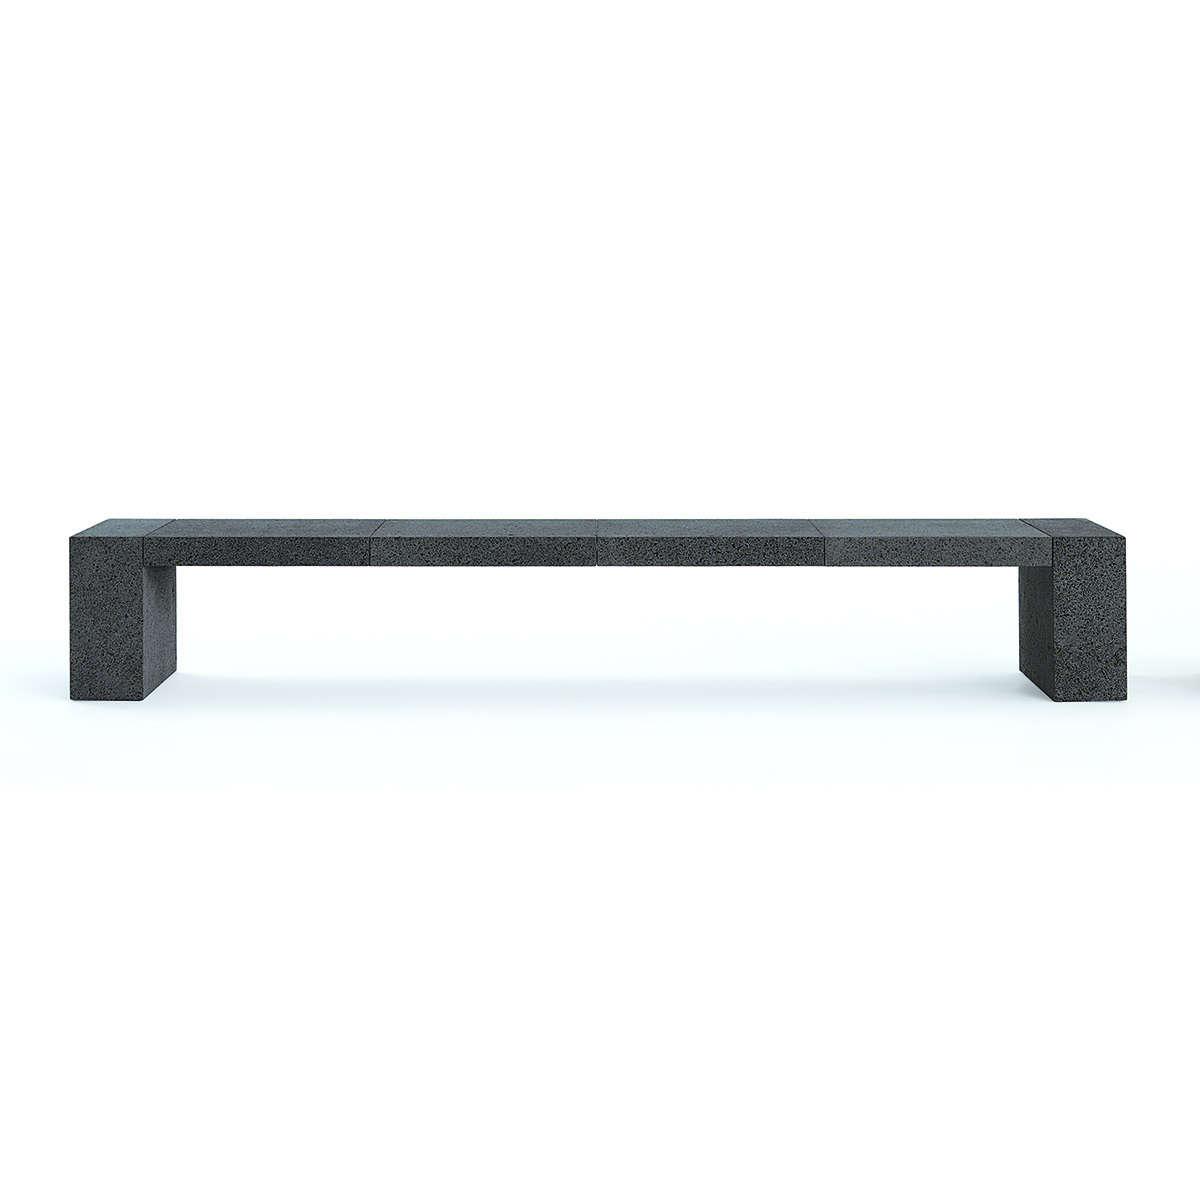 RW A14 Solid Stone Low Bench